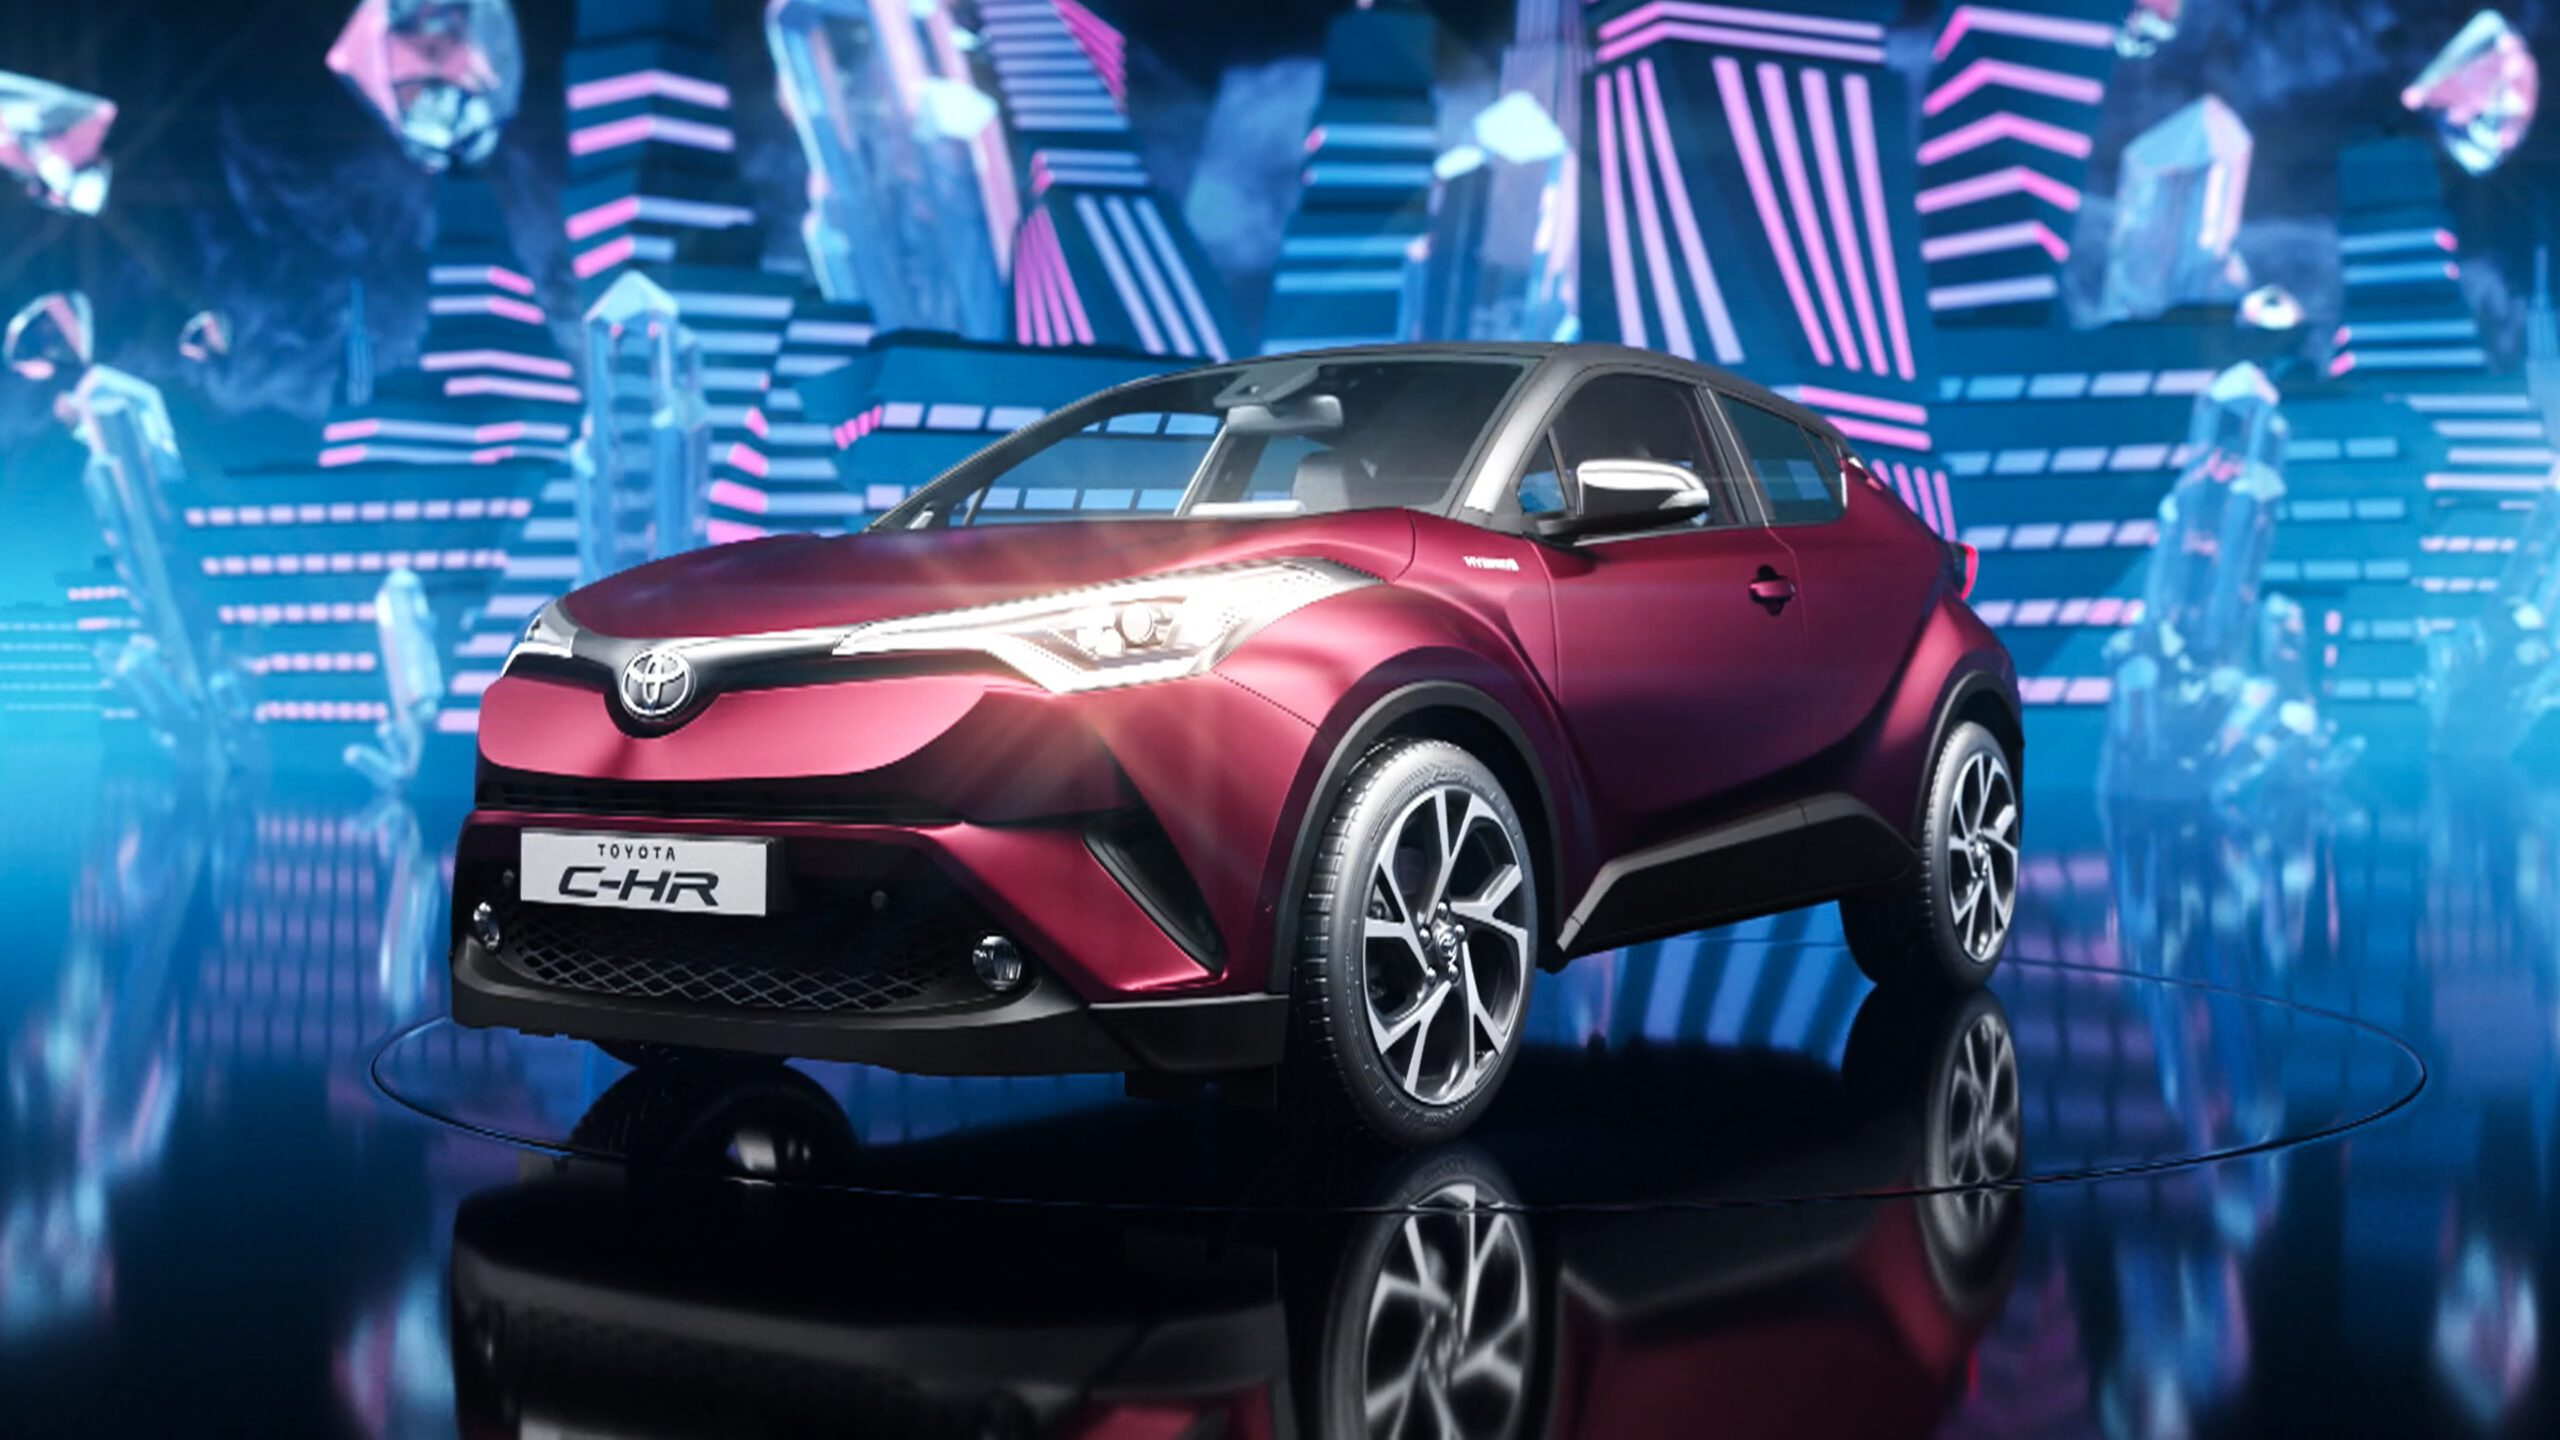 Vanite | Toyota C-HR concept design